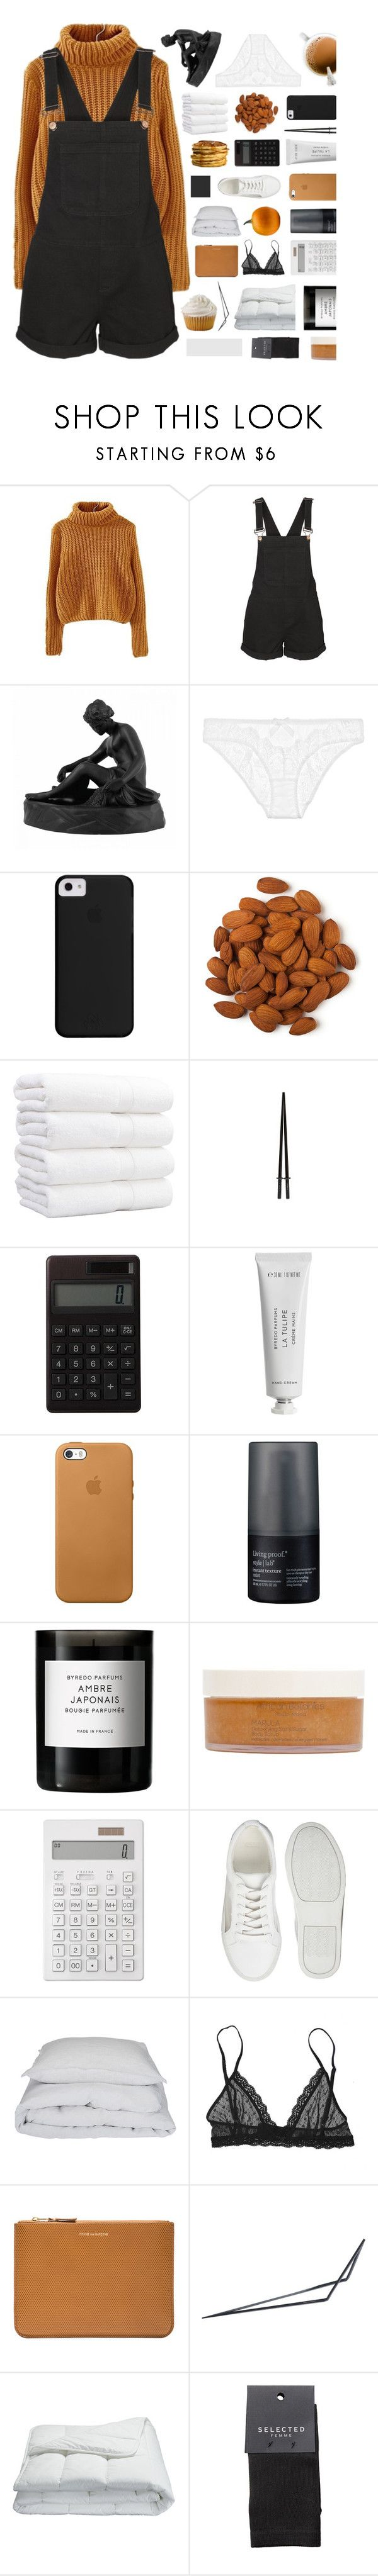 """""""I DON'T PLAY BY THE RULES"""" by city-pool ❤ liked on Polyvore featuring Vero Moda, Wedgwood, L'Agent By Agent Provocateur, Muji, Byredo, Living Proof, African Botanics, ASOS, By Nord and Eberjey"""